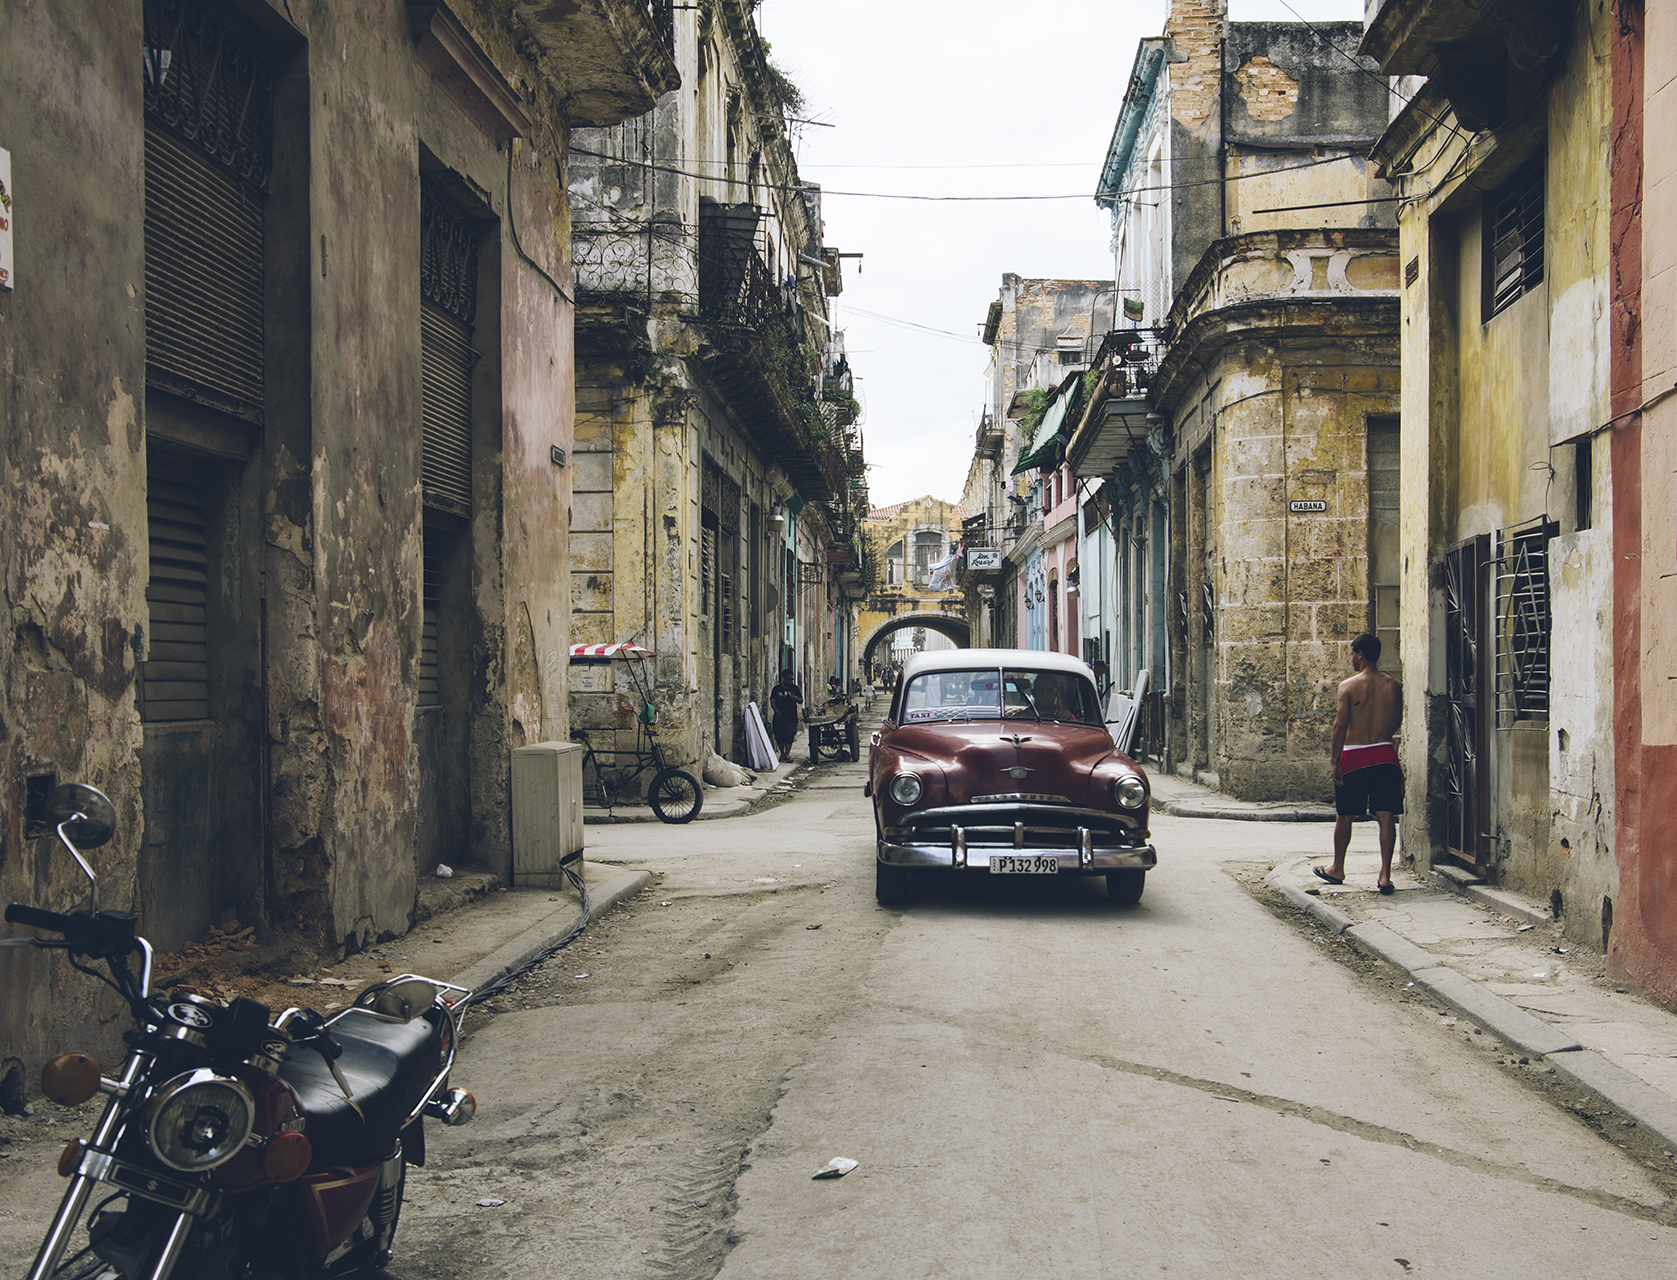 A 1953 Chevrolet lumbers through old Havana.